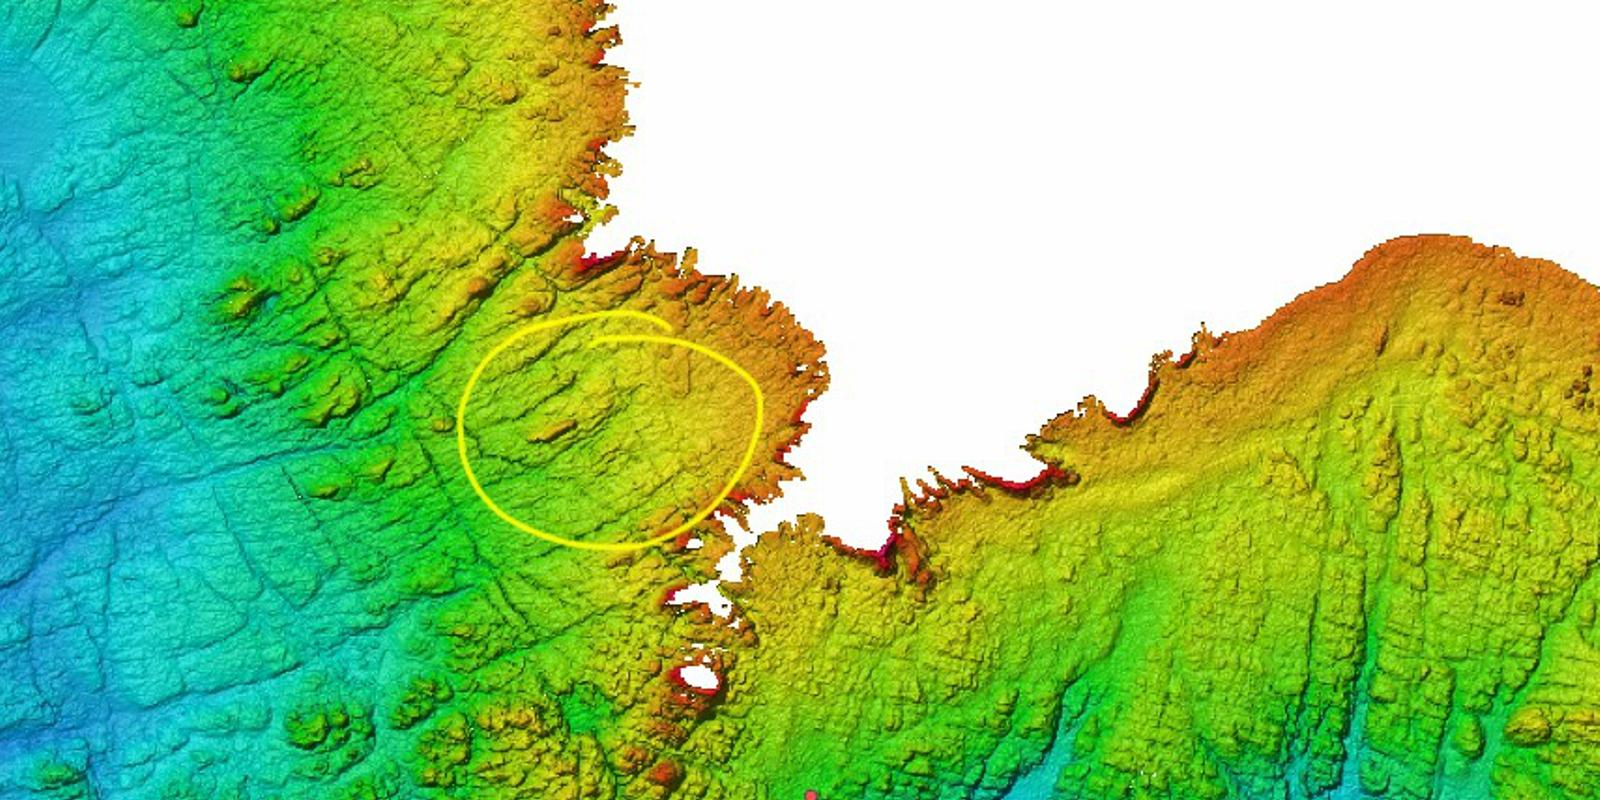 Bathymetry of the seabed